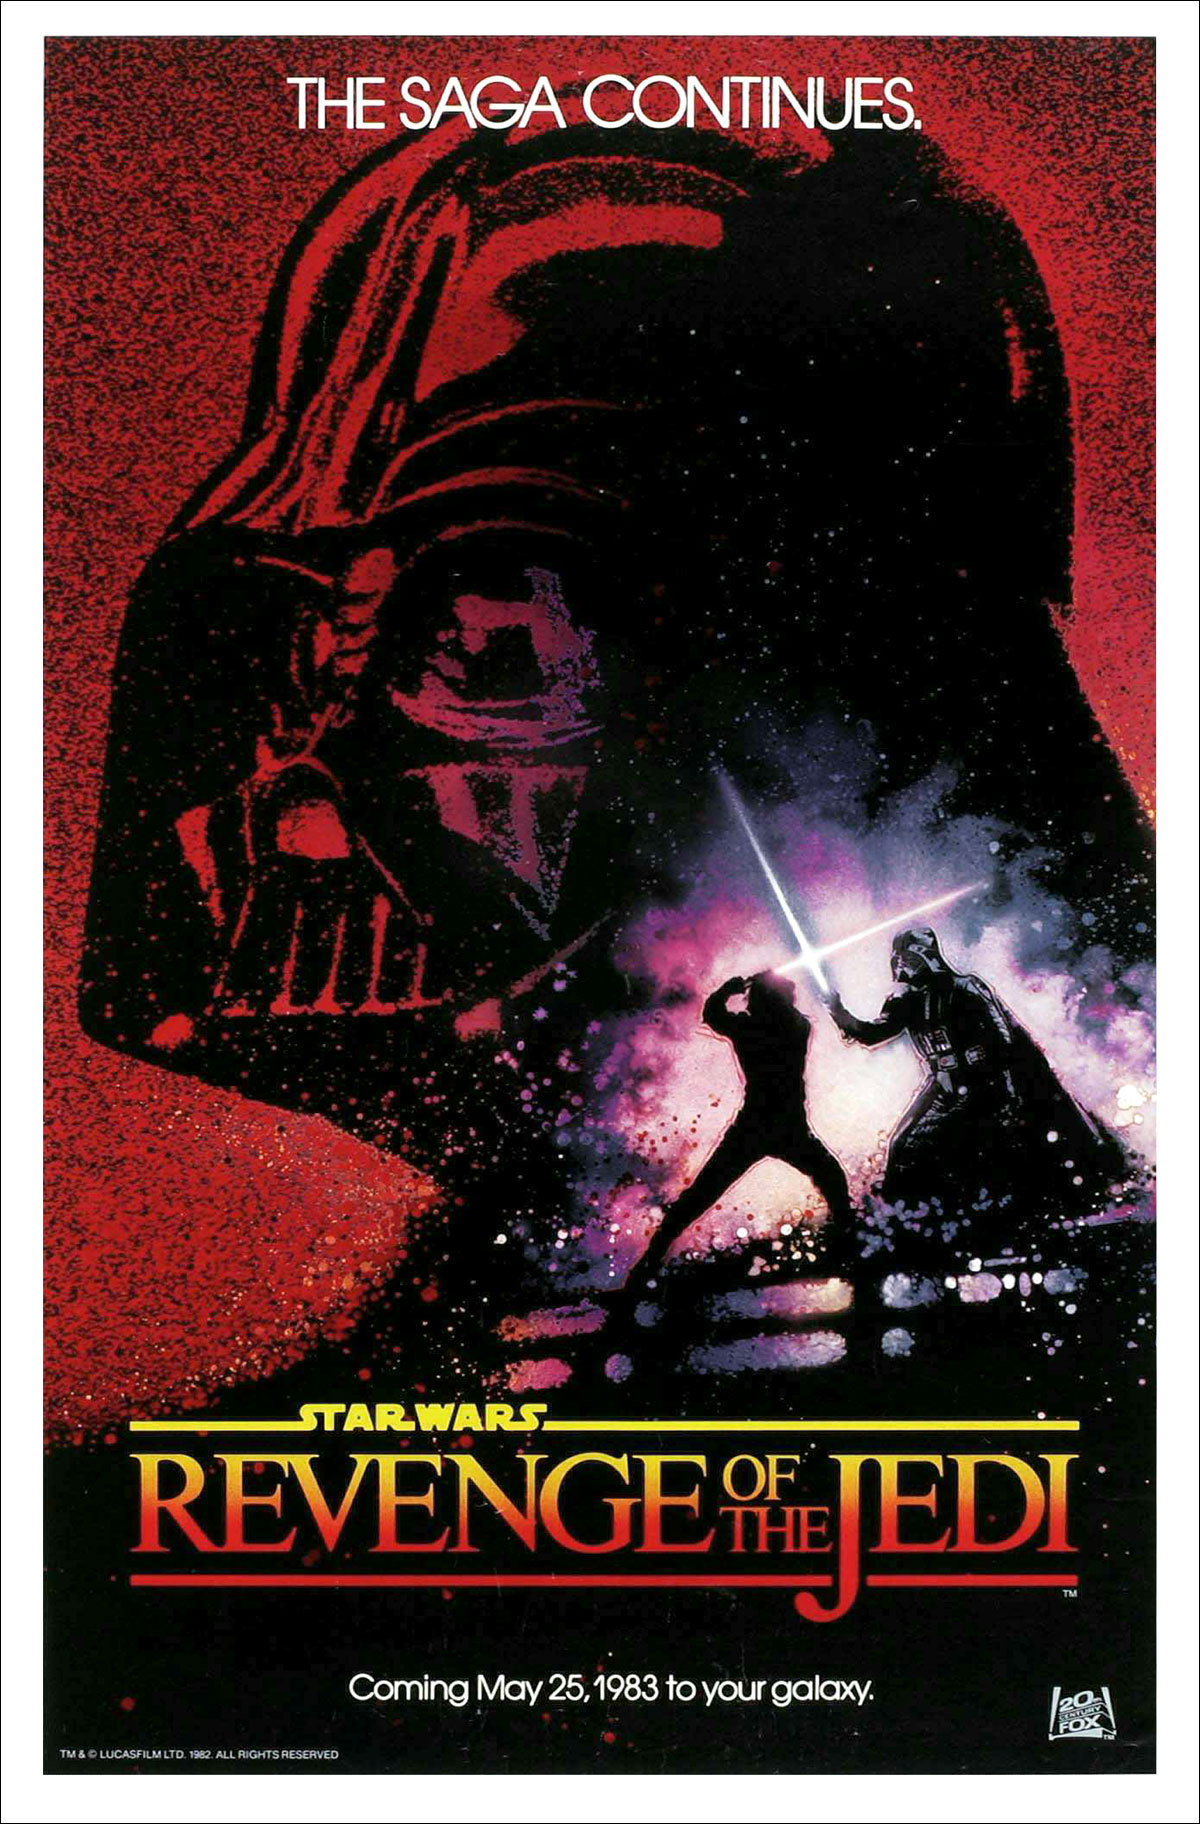 Revenge Of The Jedi Etoile Etoile Star Wars Empire Strikes Back Photo 23626875 Fanpop